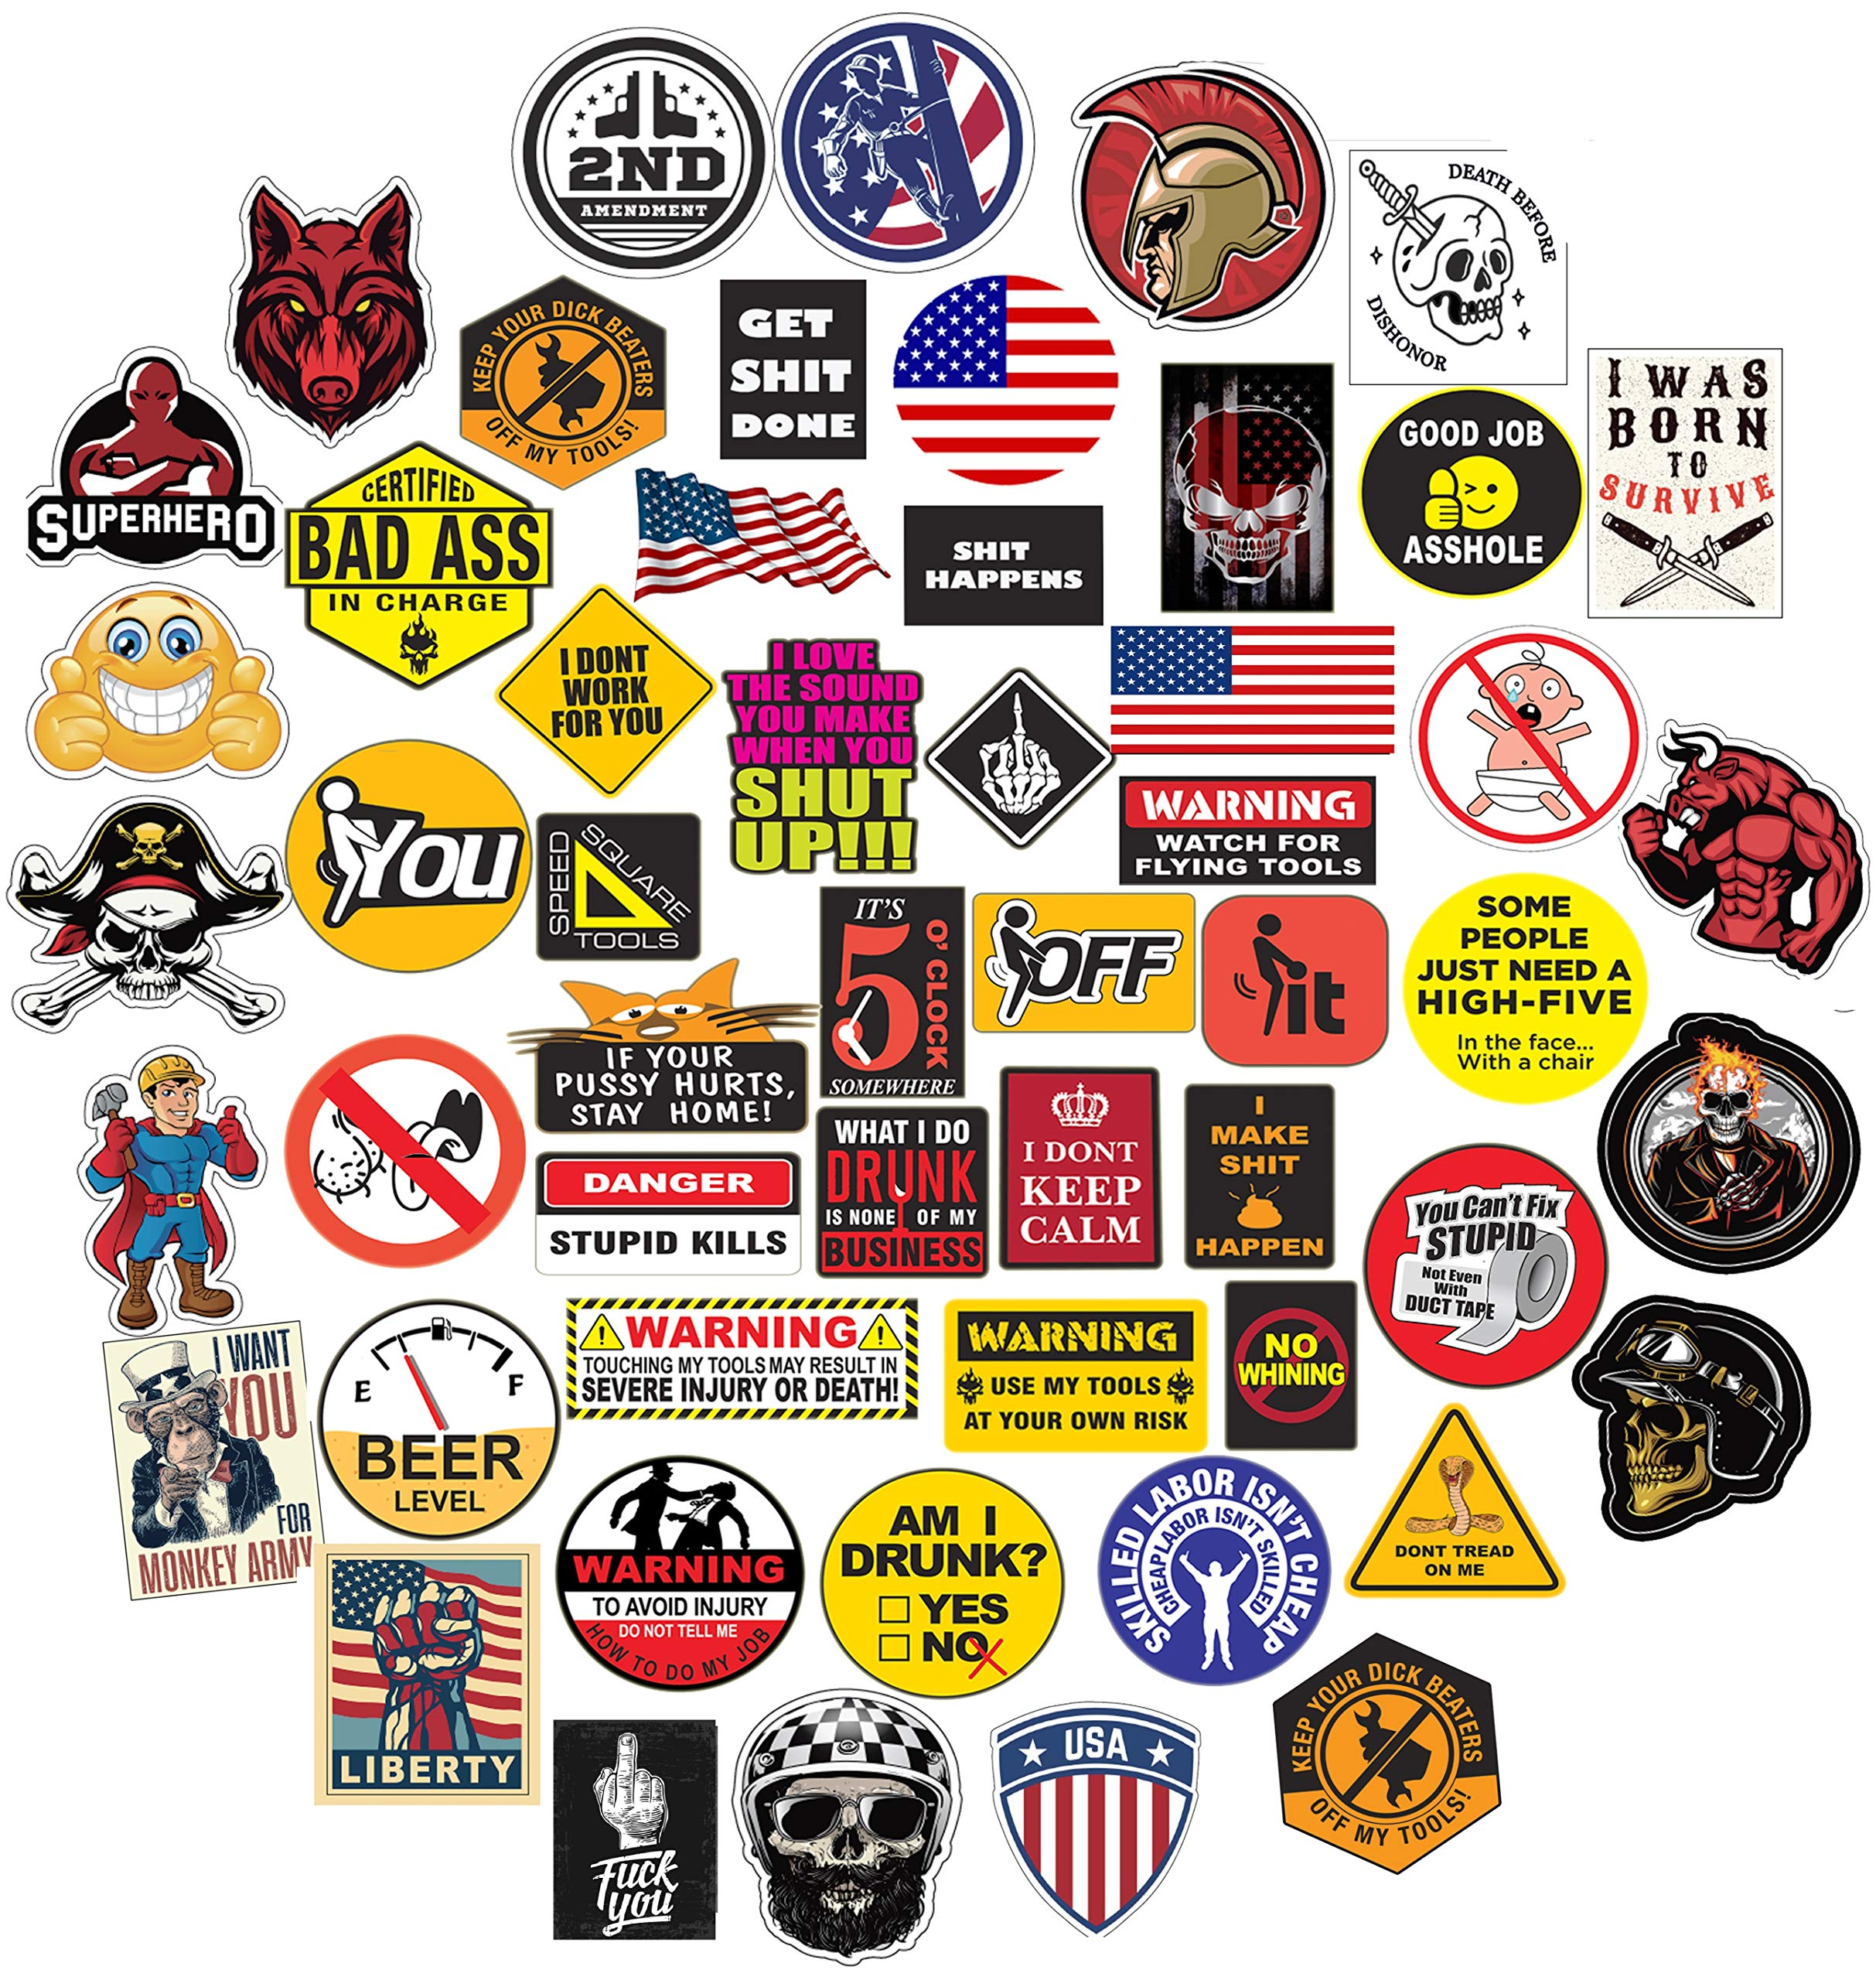 53 Pack Hardhat Funny Sticker for Tool Box Helmet Hardhat, Gifts for Adult Essential Worker Welder Construction Union Military Electrician Vinyl Decal